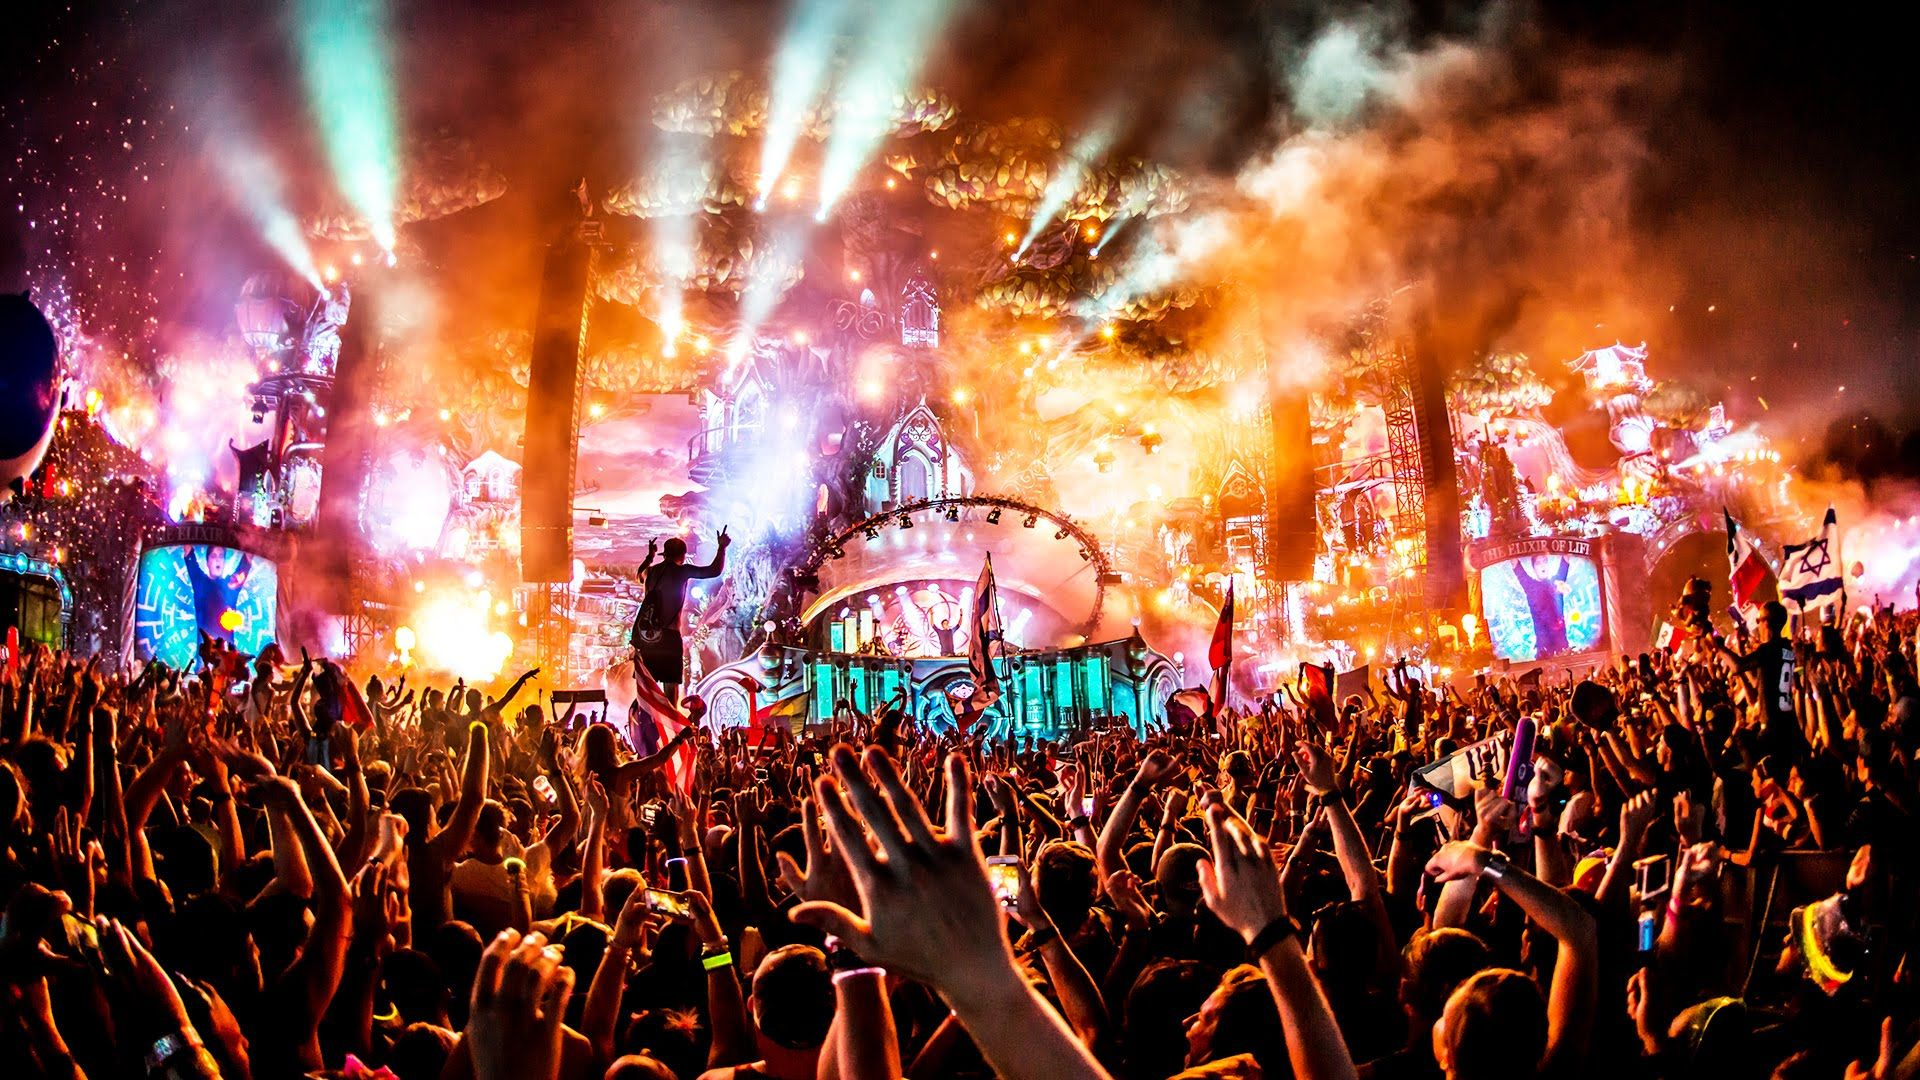 Tomorrowland 2016 Wallpapers Top Free Tomorrowland 2016